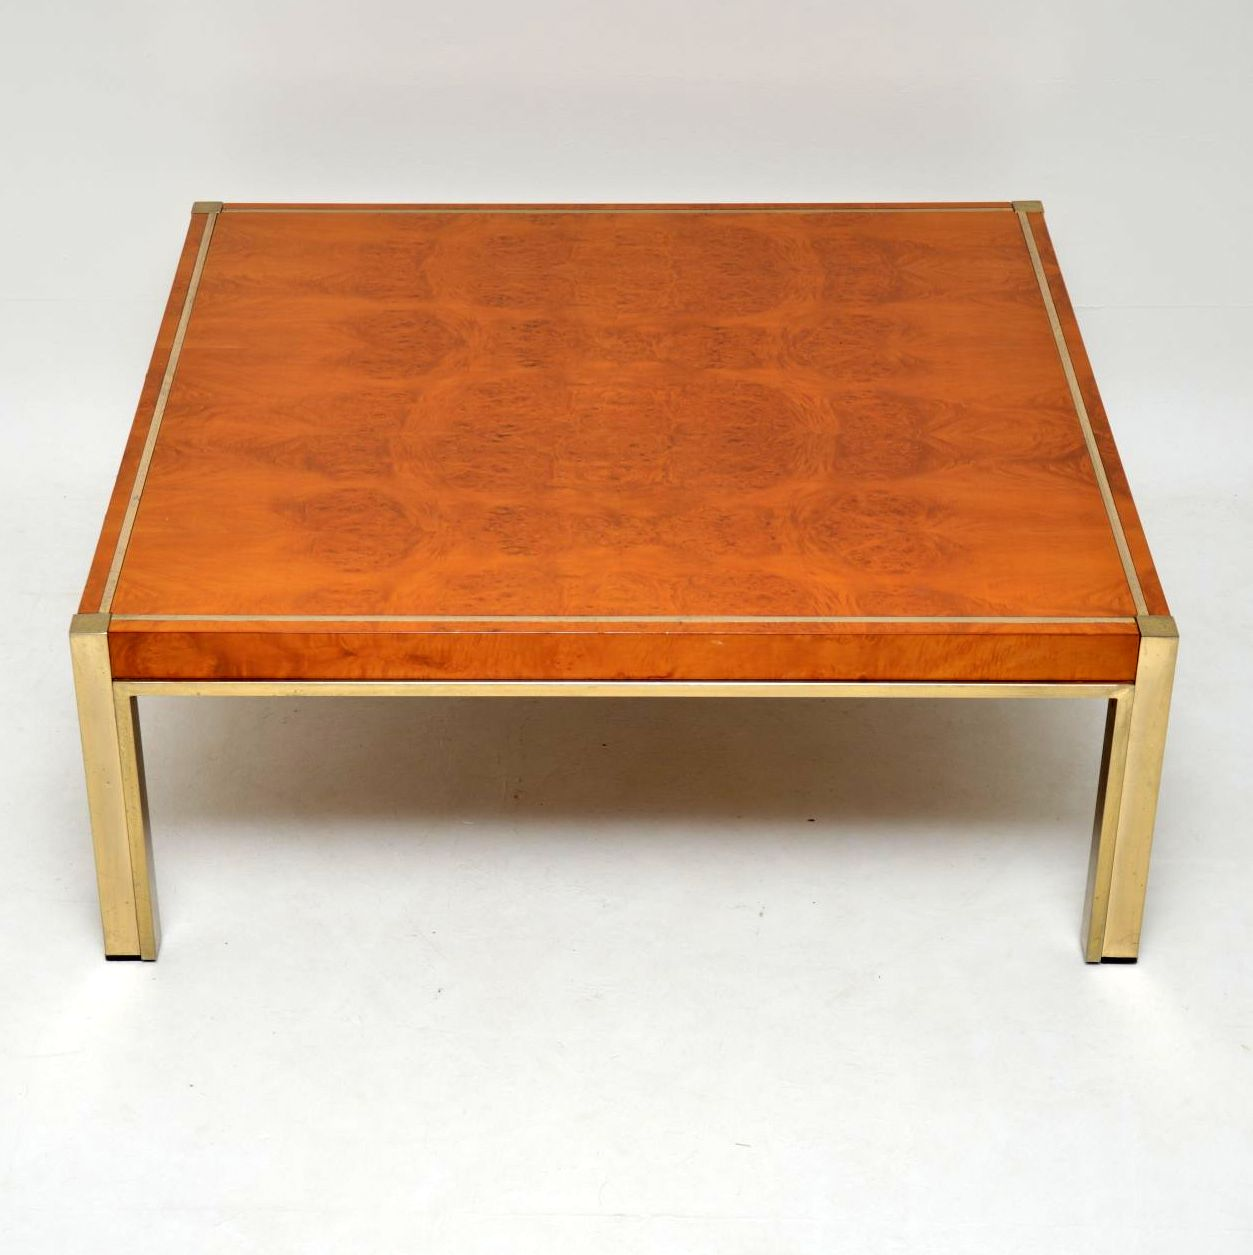 italian_retro_vintage_walnut_brass_coffee_table_zevi_3